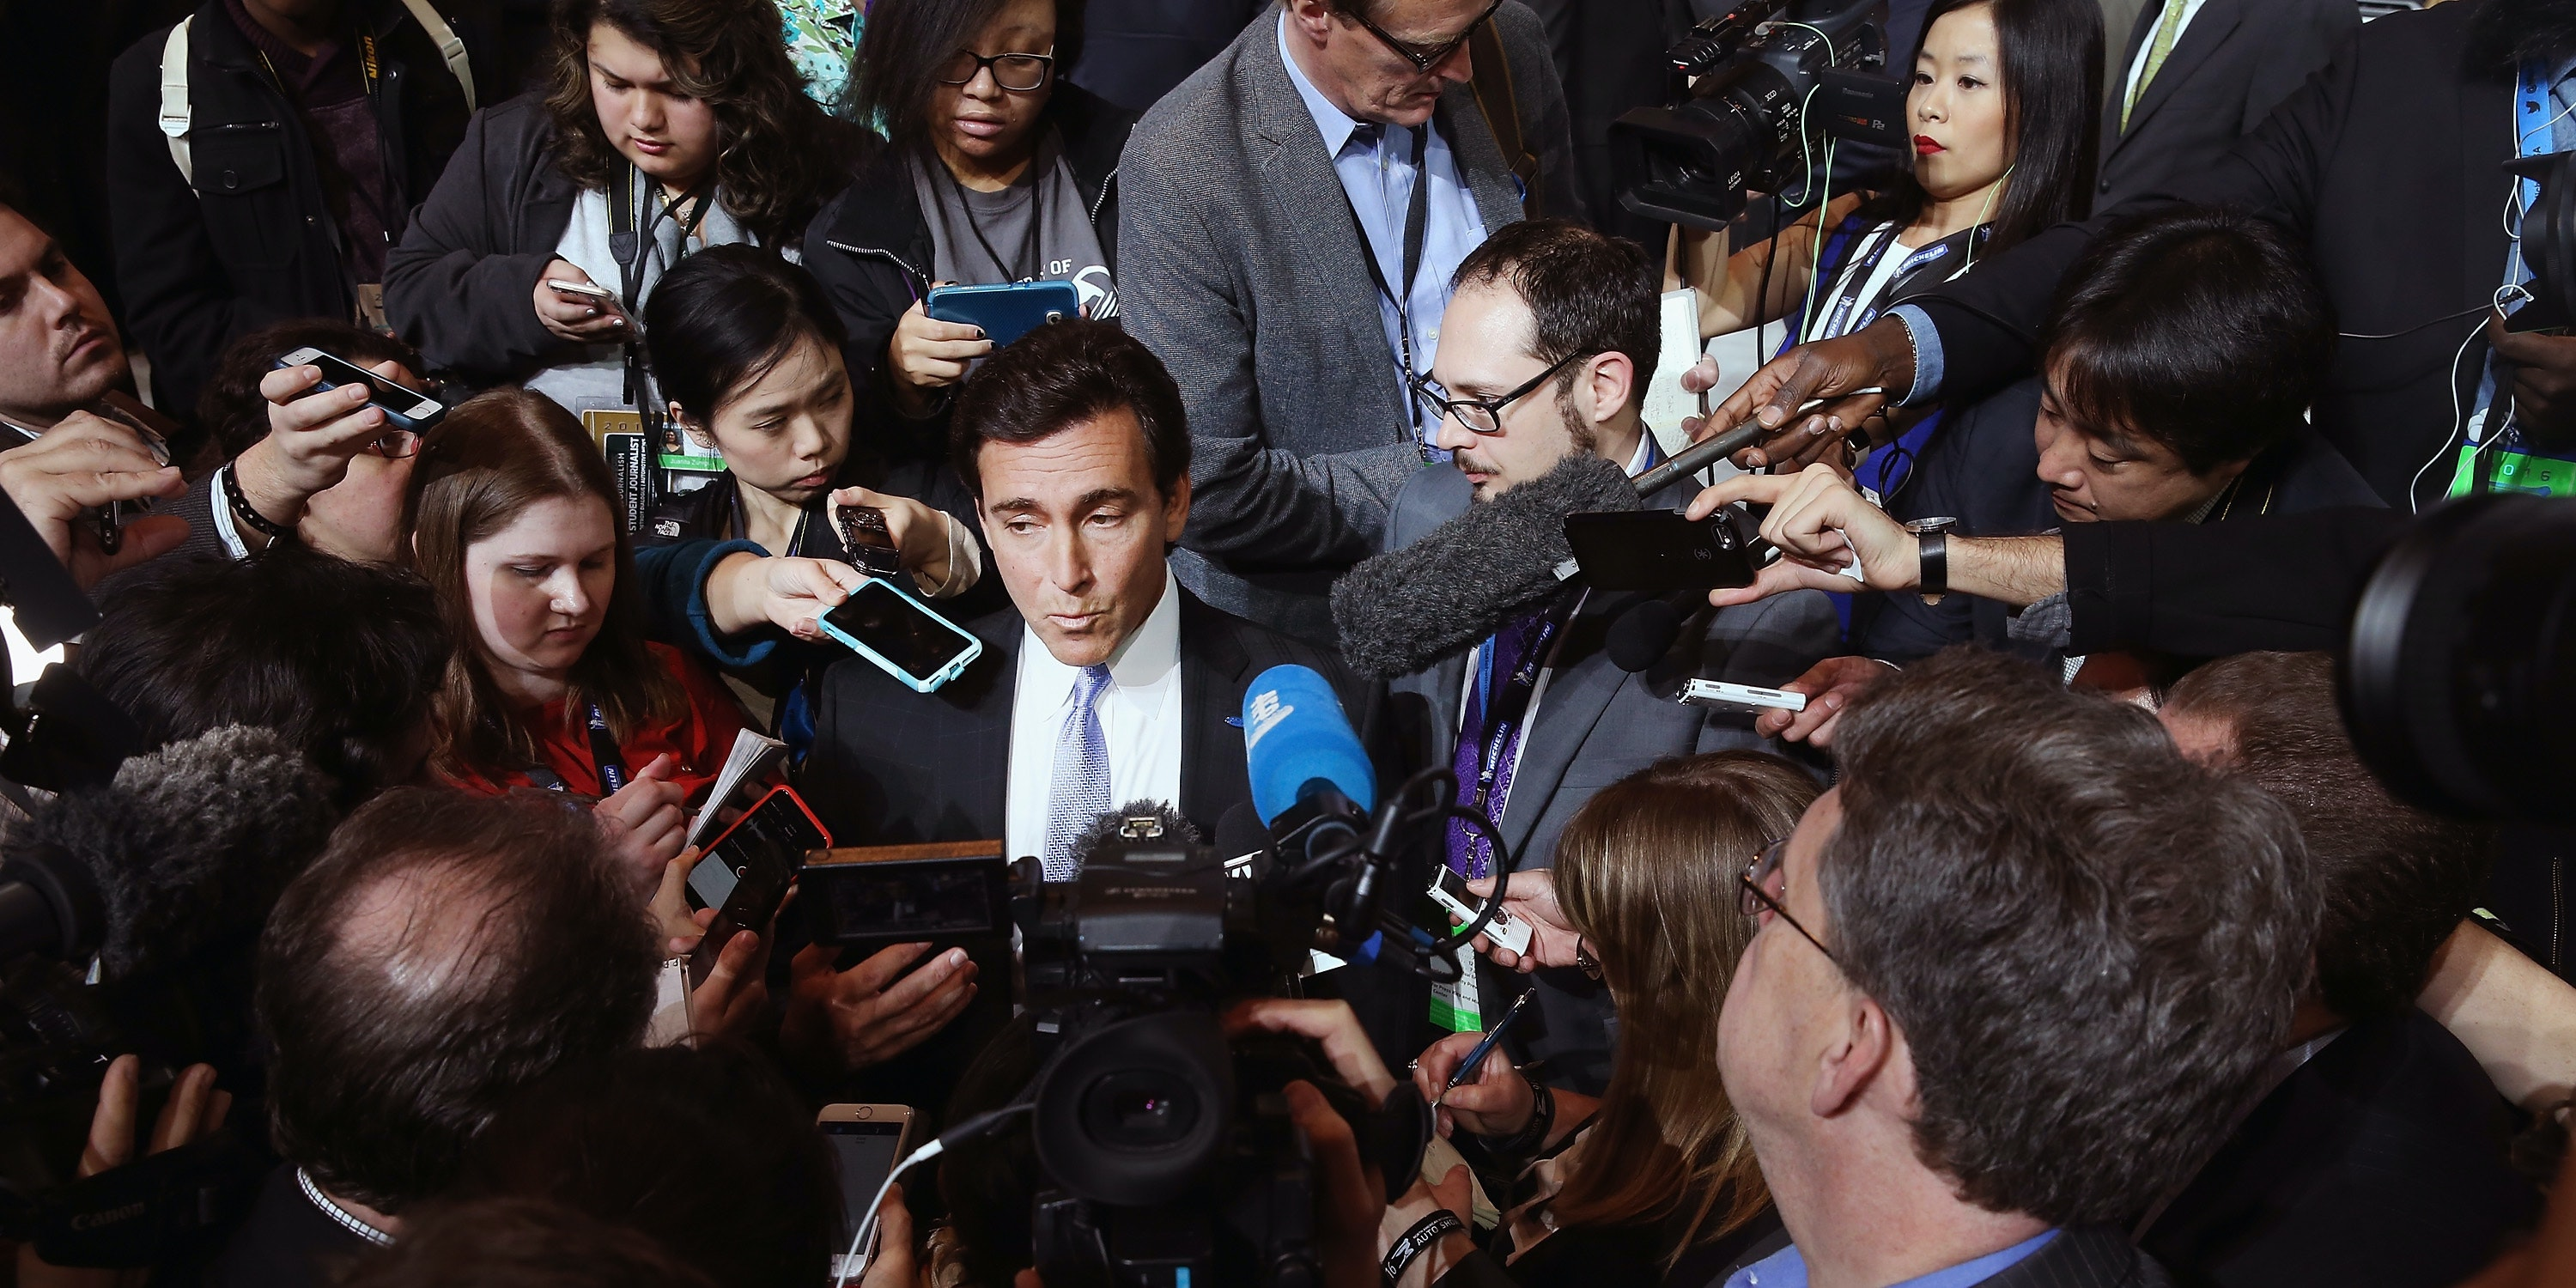 DETROIT, MI - JANUARY 11: Mark Fields, President and CEO of Ford Motor Company, speaks to reporters after the introduction of the 2017 Fusion and new F150 Raptor at the North American International Auto Show on January 11, 2016 in Detroit, Michigan. The show is open to the public from January 16-24.  (Photo by Scott Olson/Getty Images)